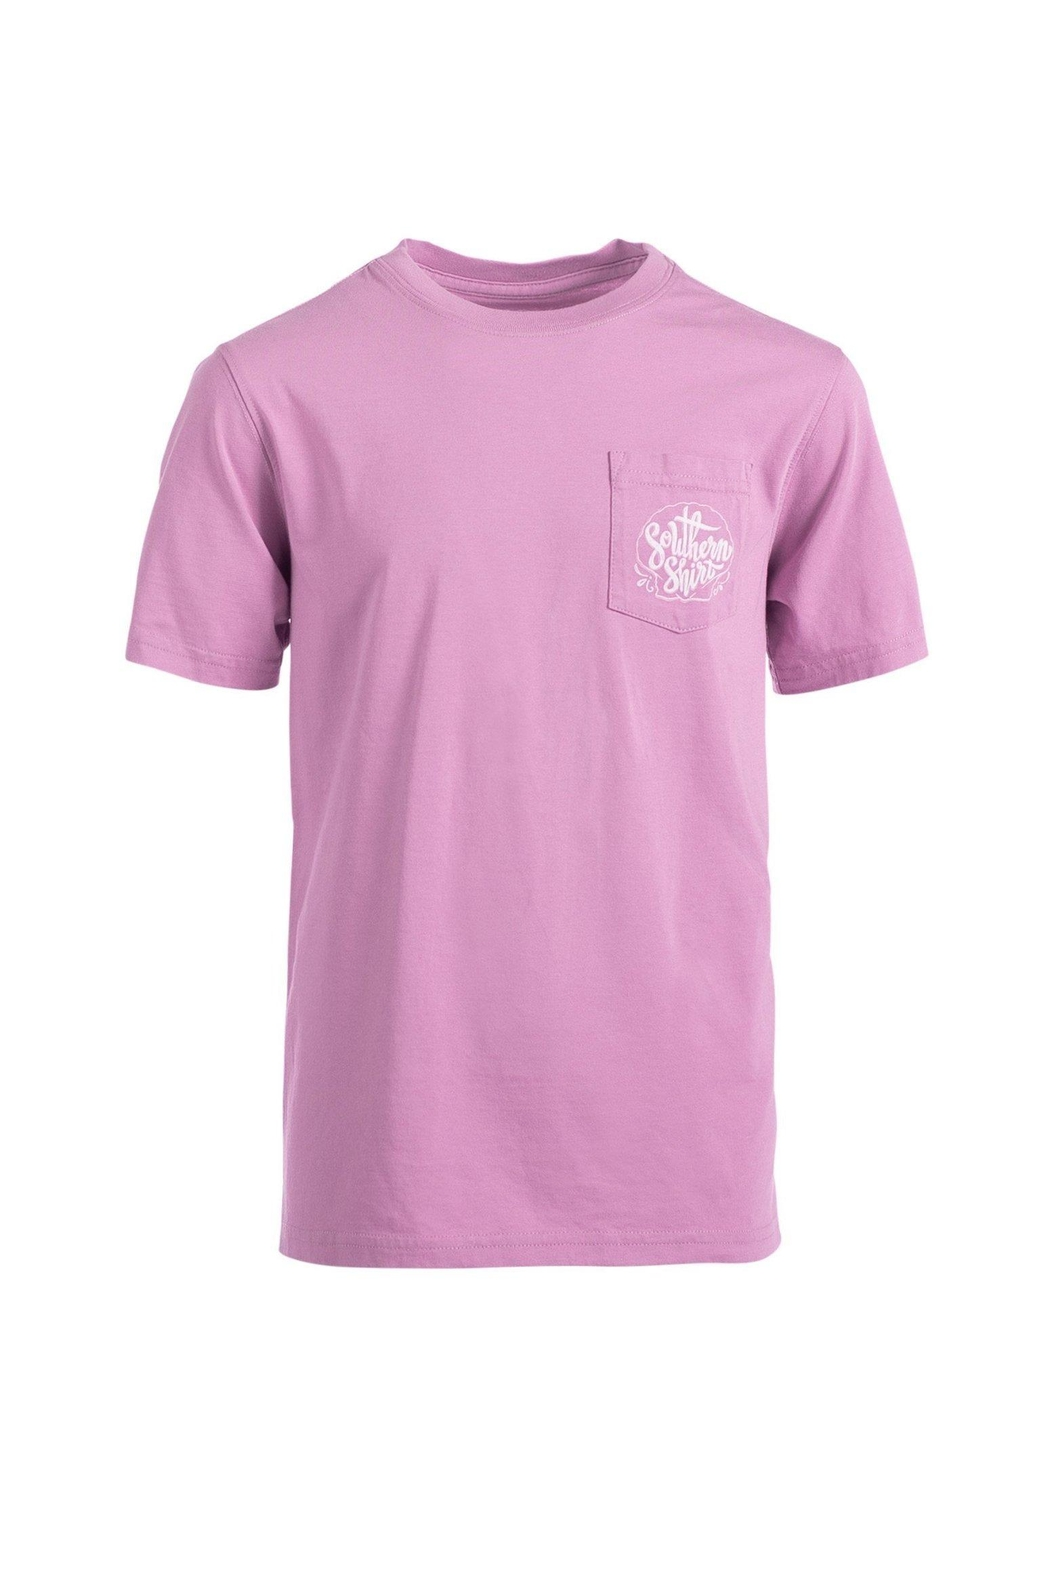 Southern Shirt Shell We Dance-Tee - Front Full Image